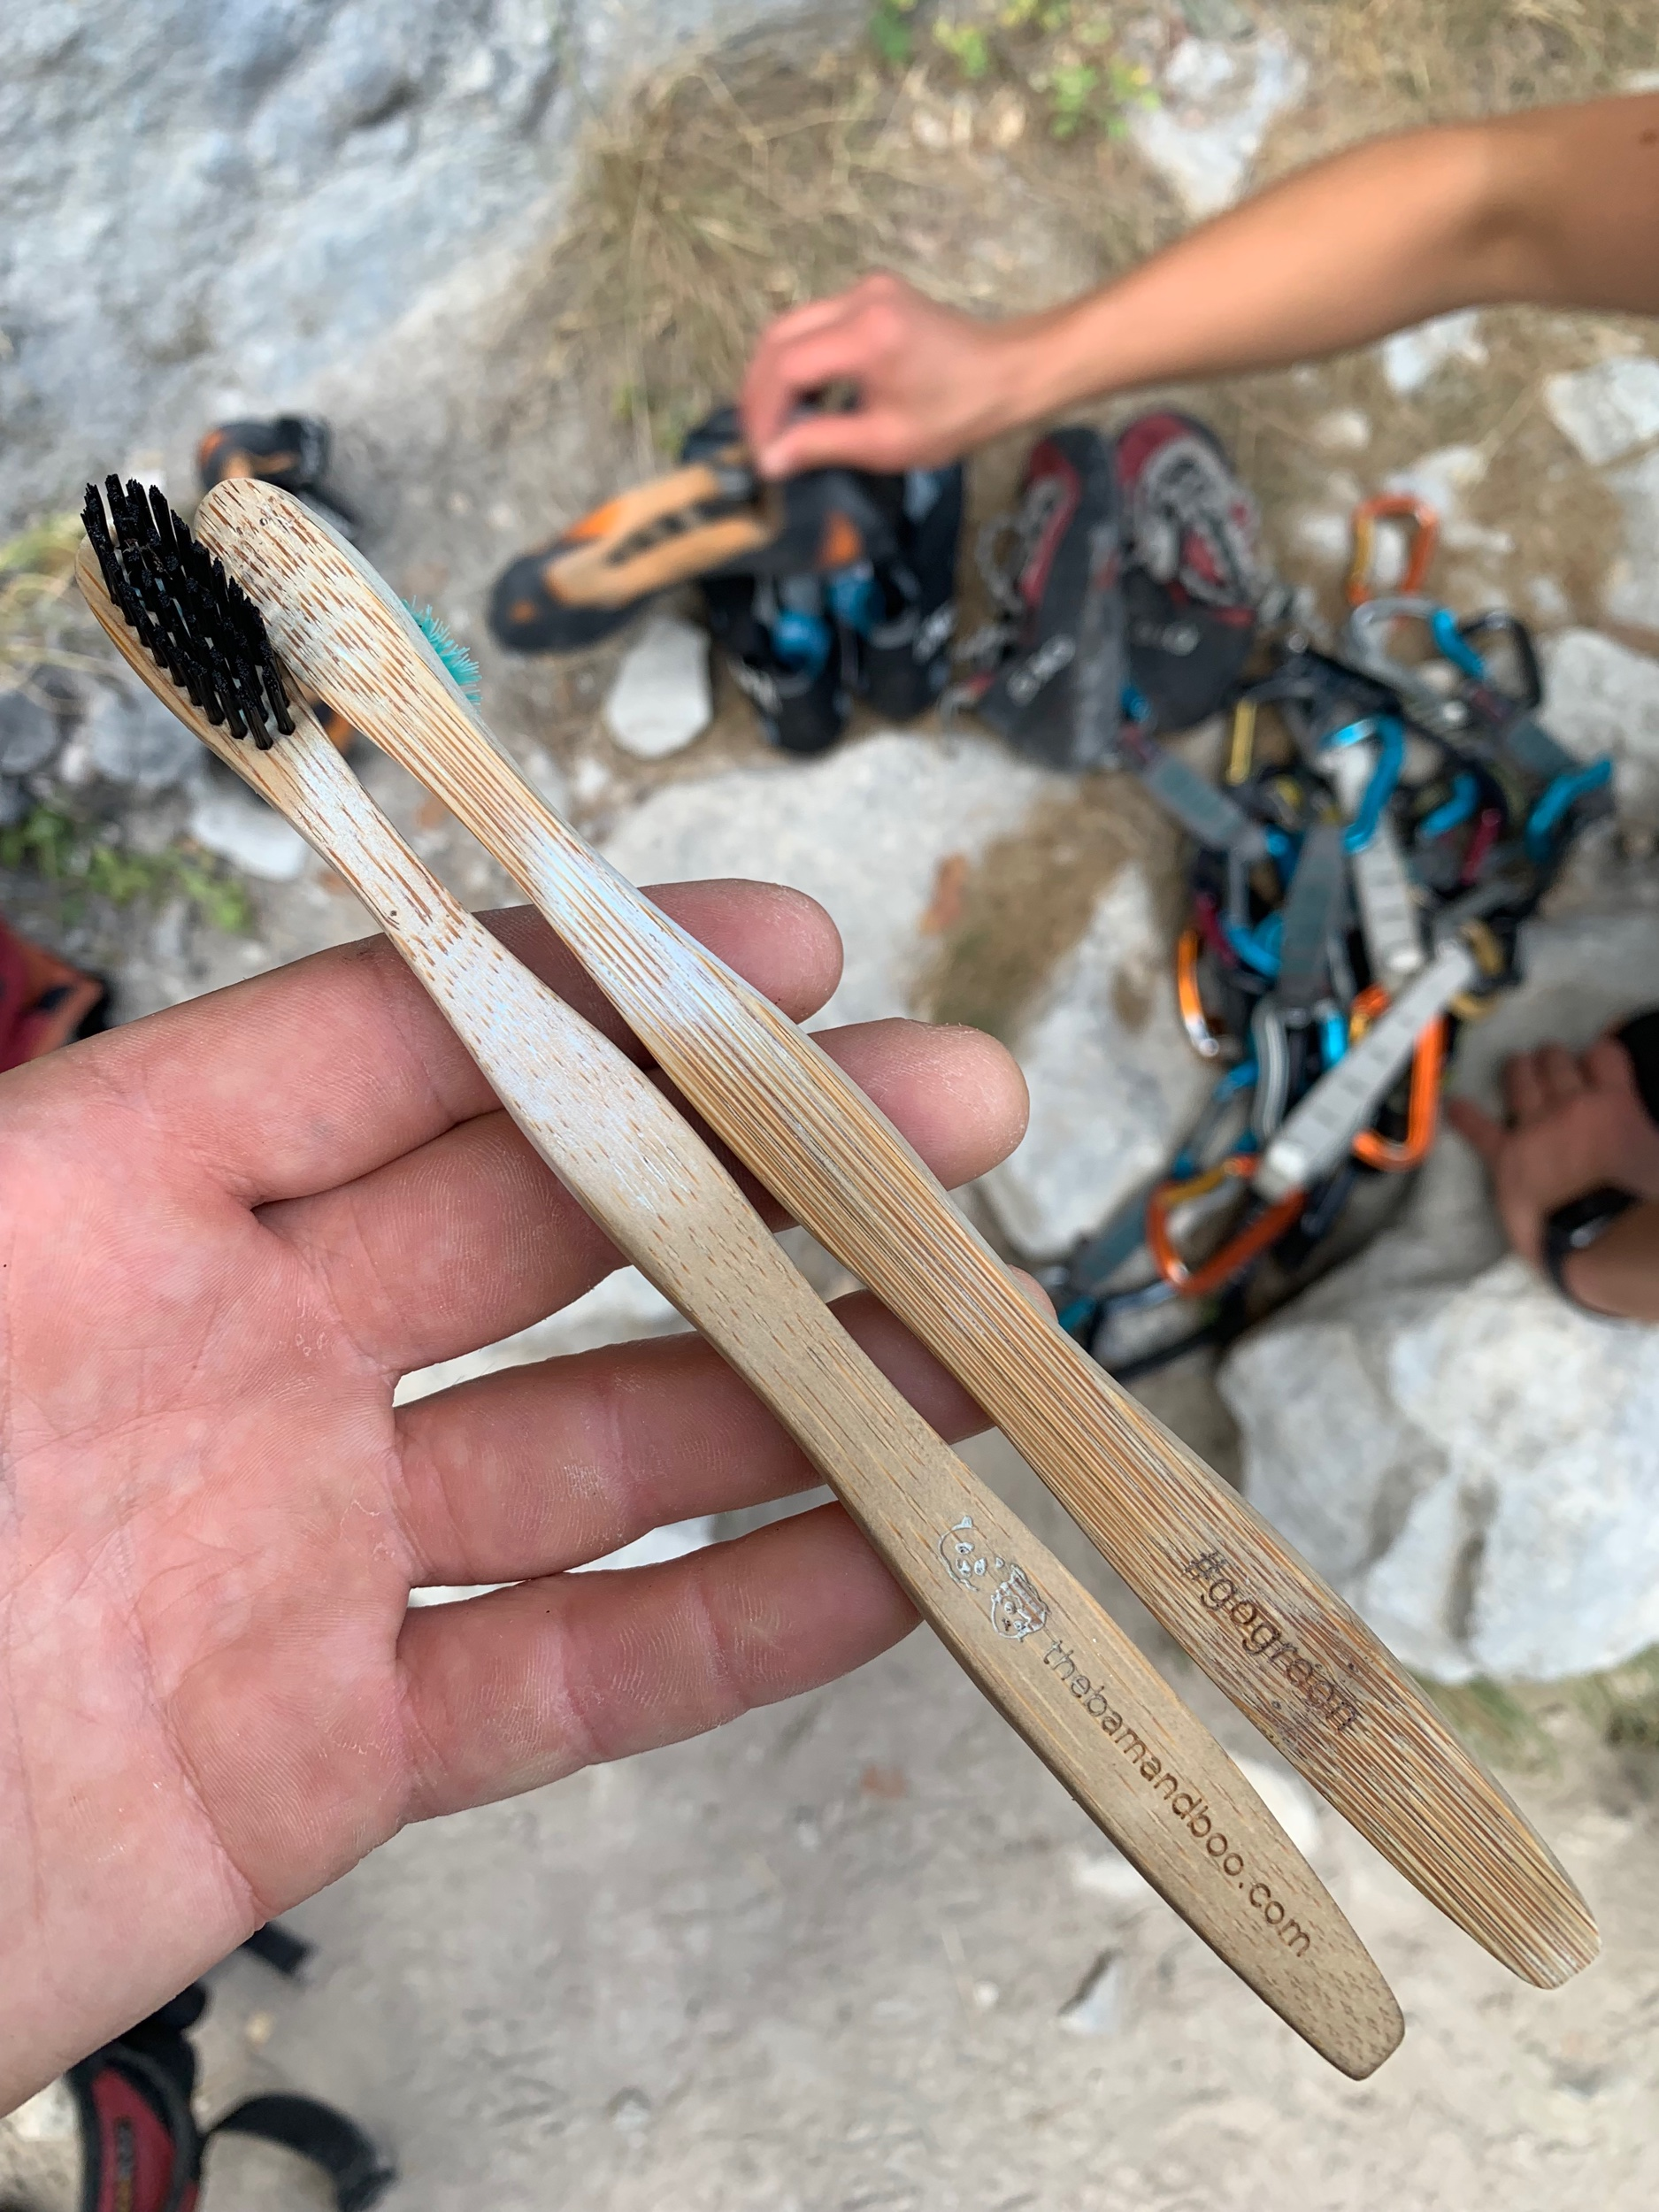 A second life for our BamandBoo toothbrushes - scrubbing holds on climbs!